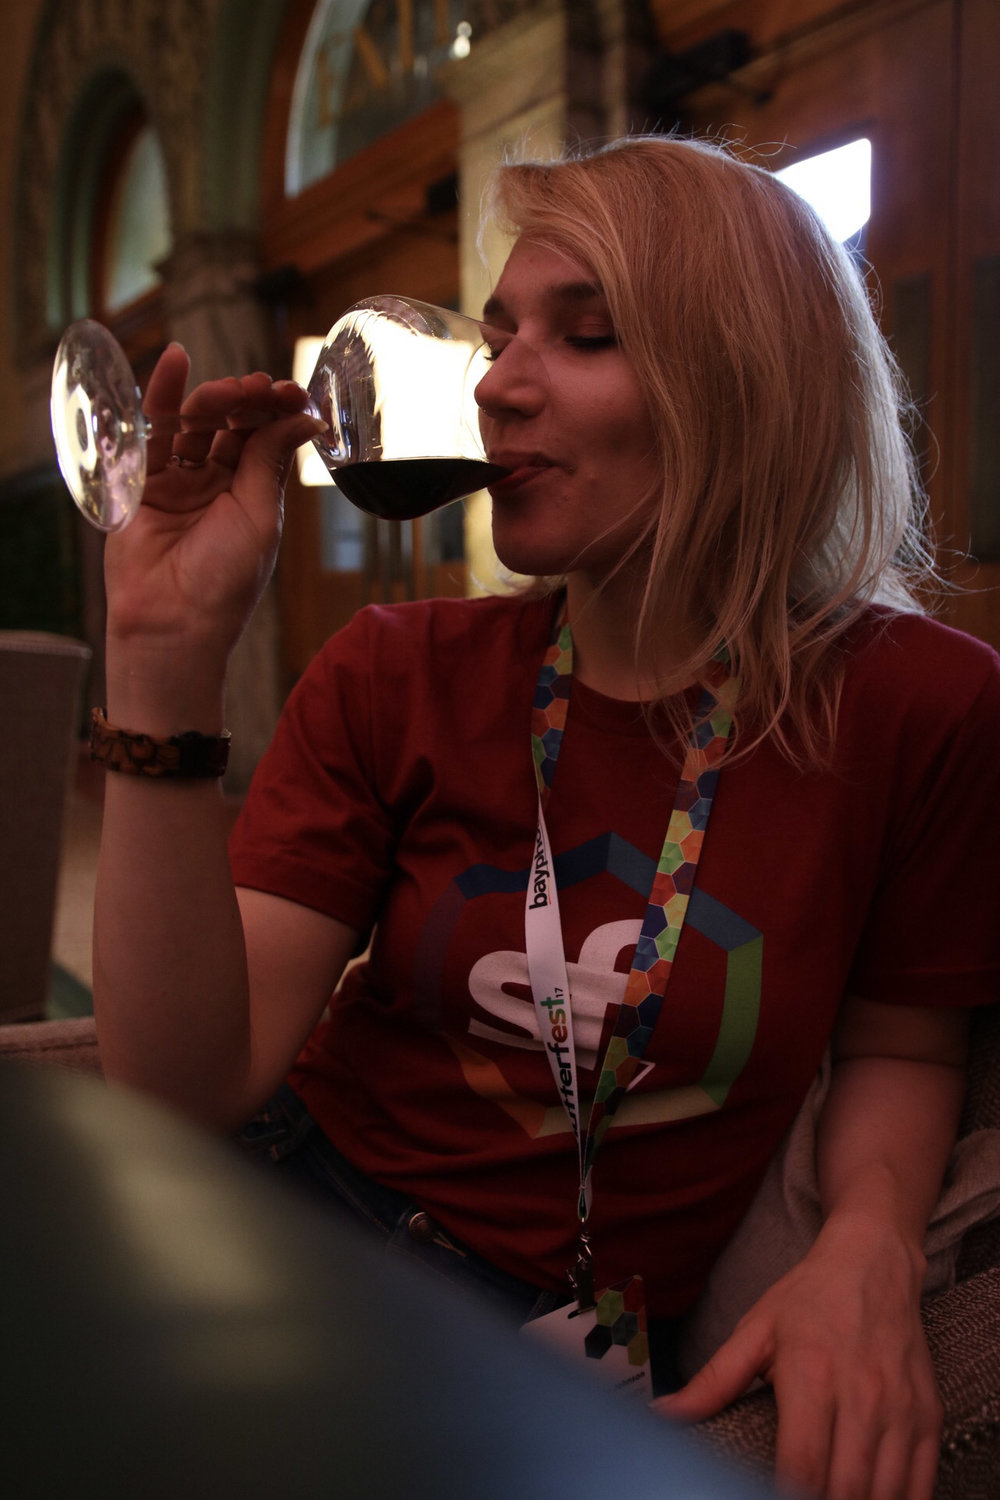 Enjoying a glass of wine at the end of the day! Photo by Craig Warnhoff